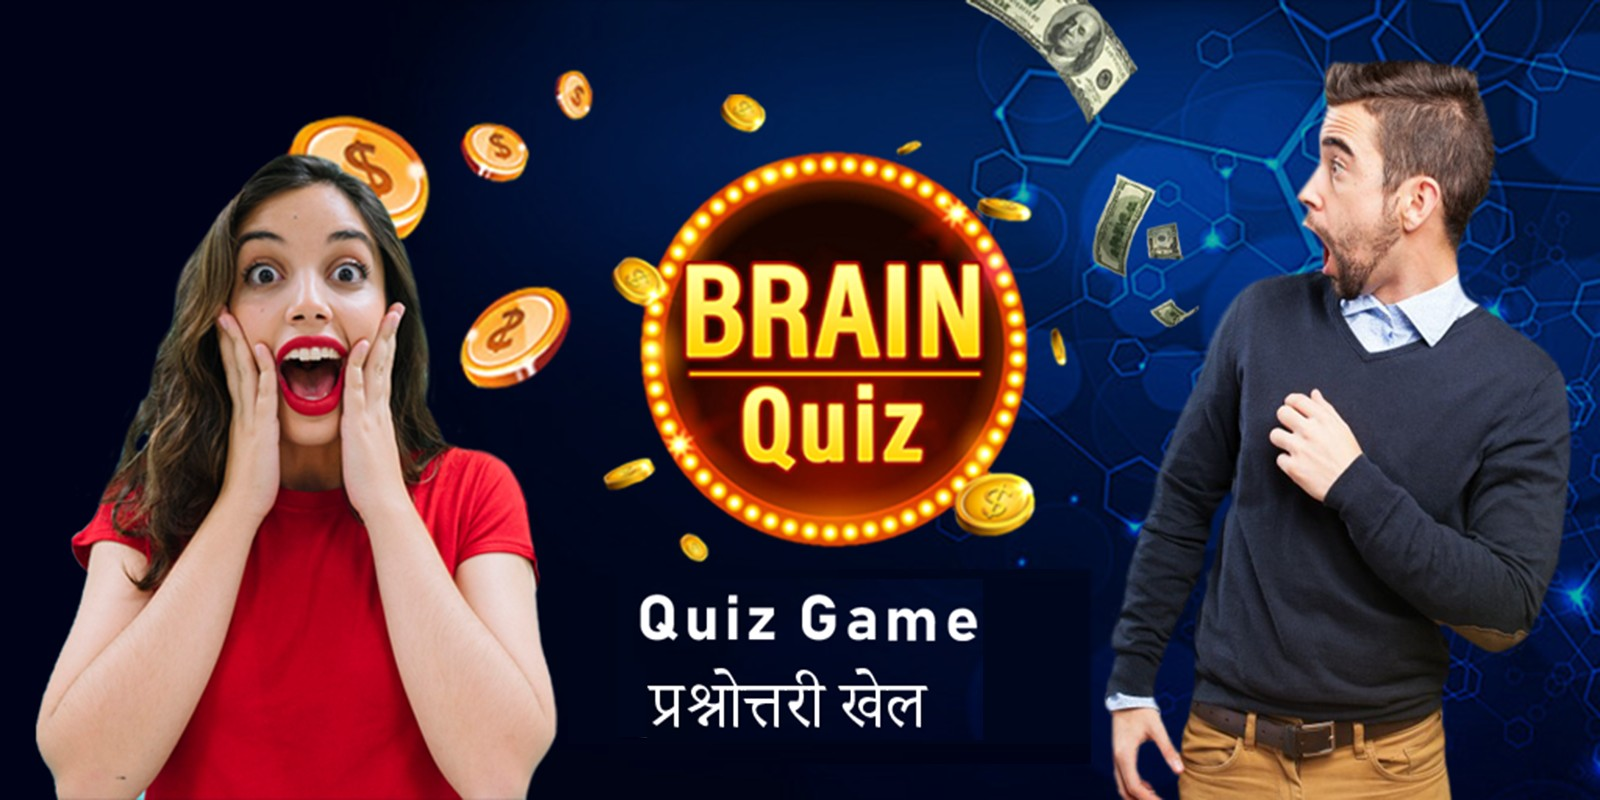 Brain Quiz With Admin Panel - Android App Template